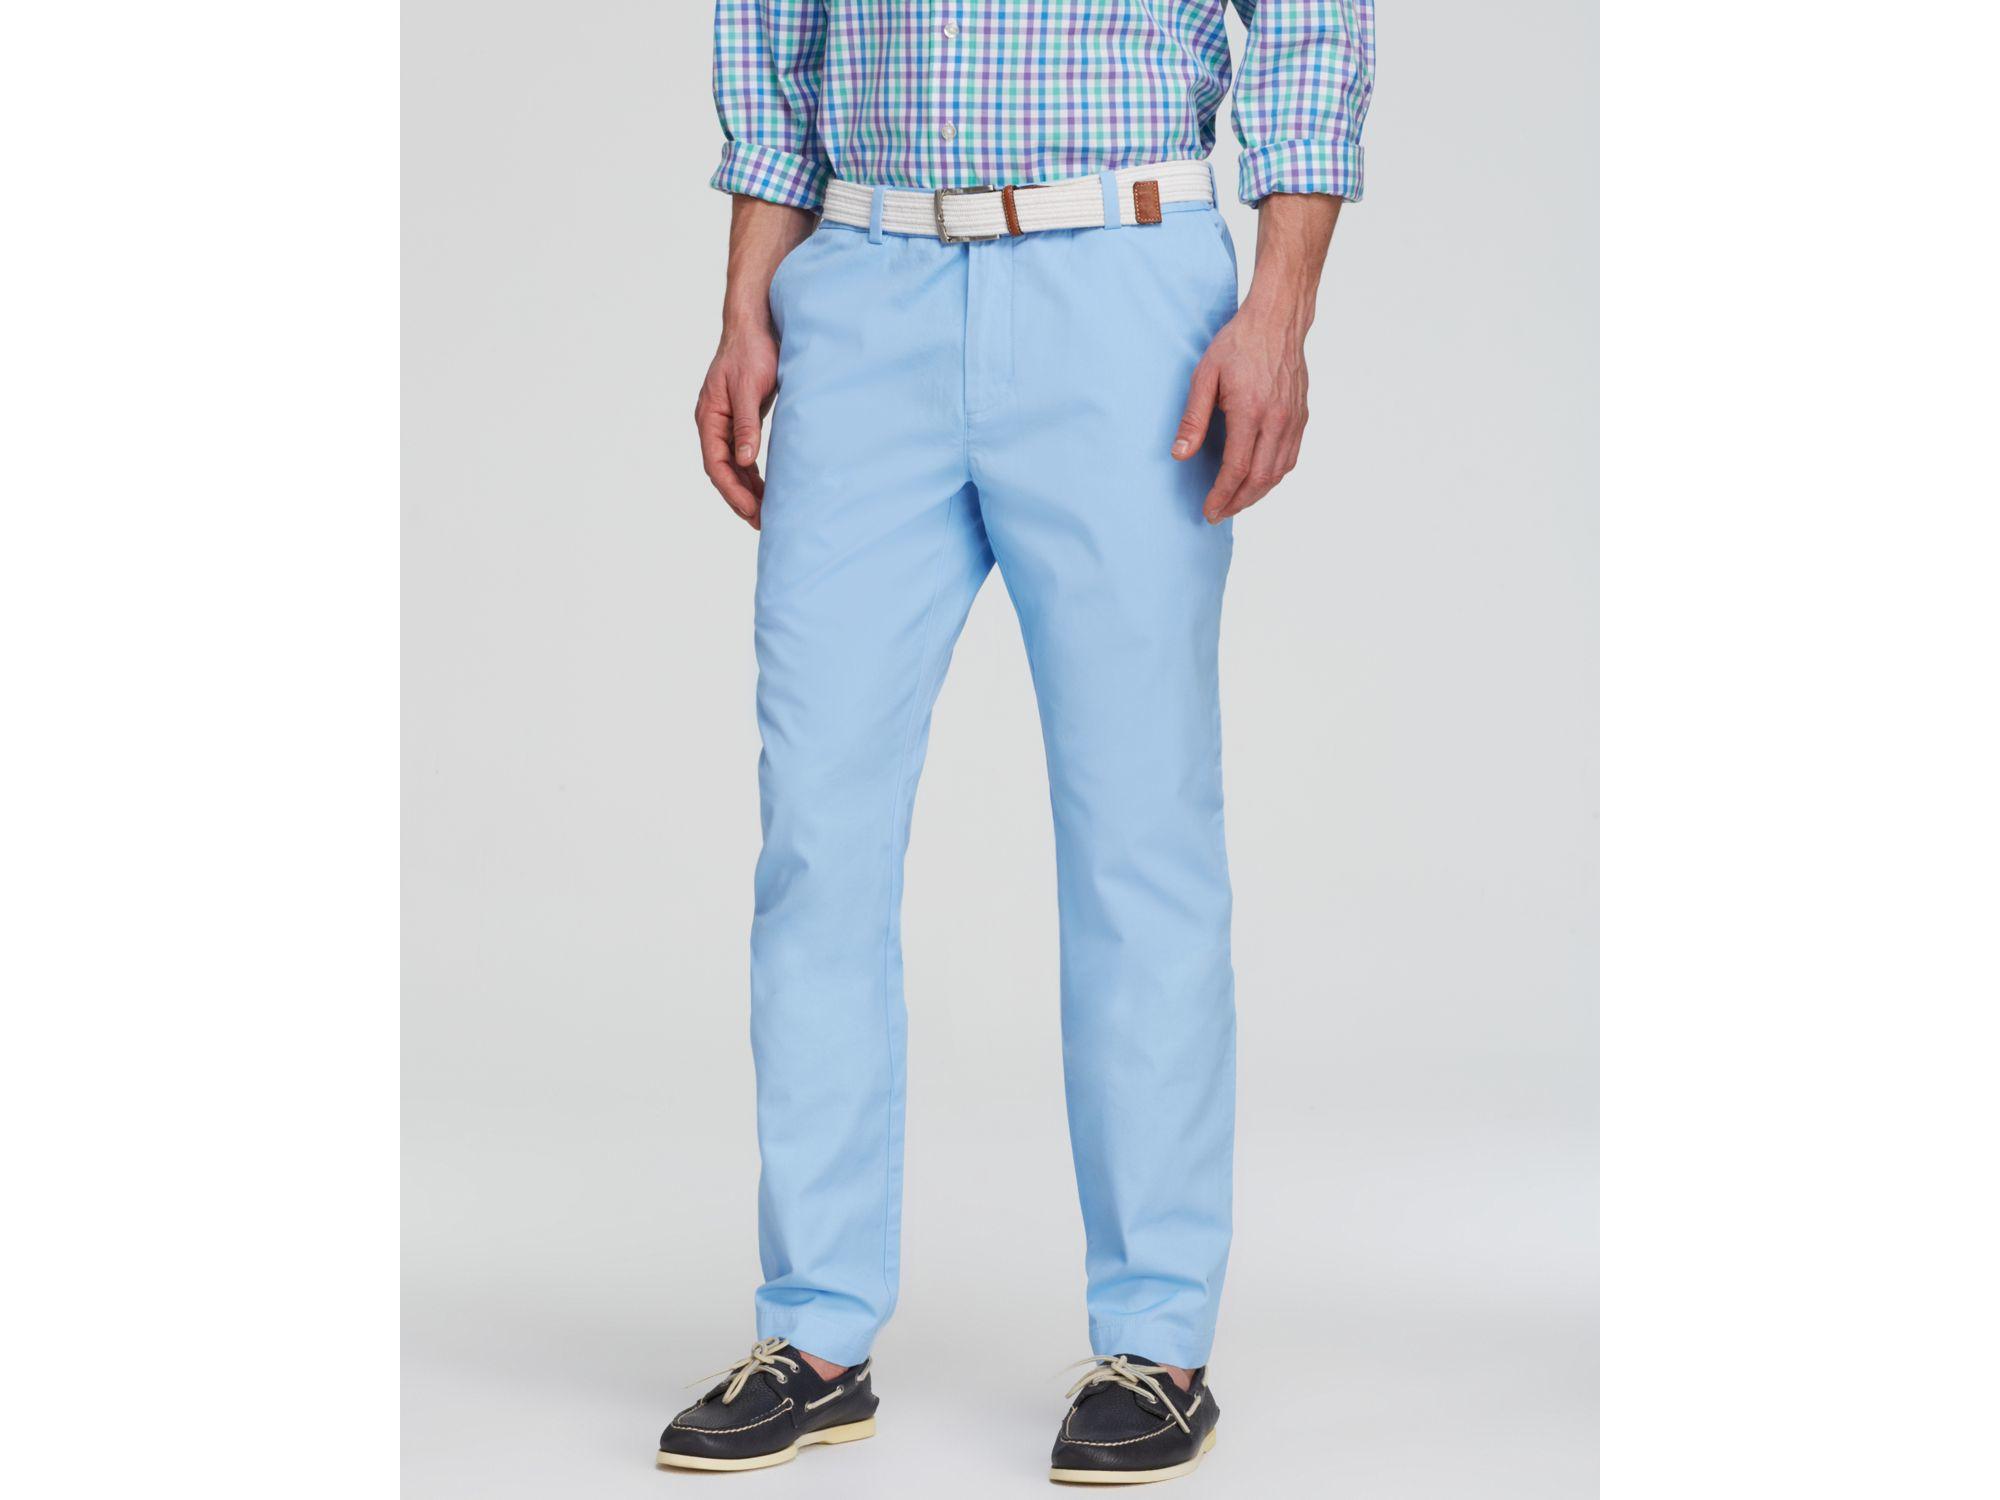 Lyst Vineyard Vines Breaker Pants Slim Fit In Blue For Men